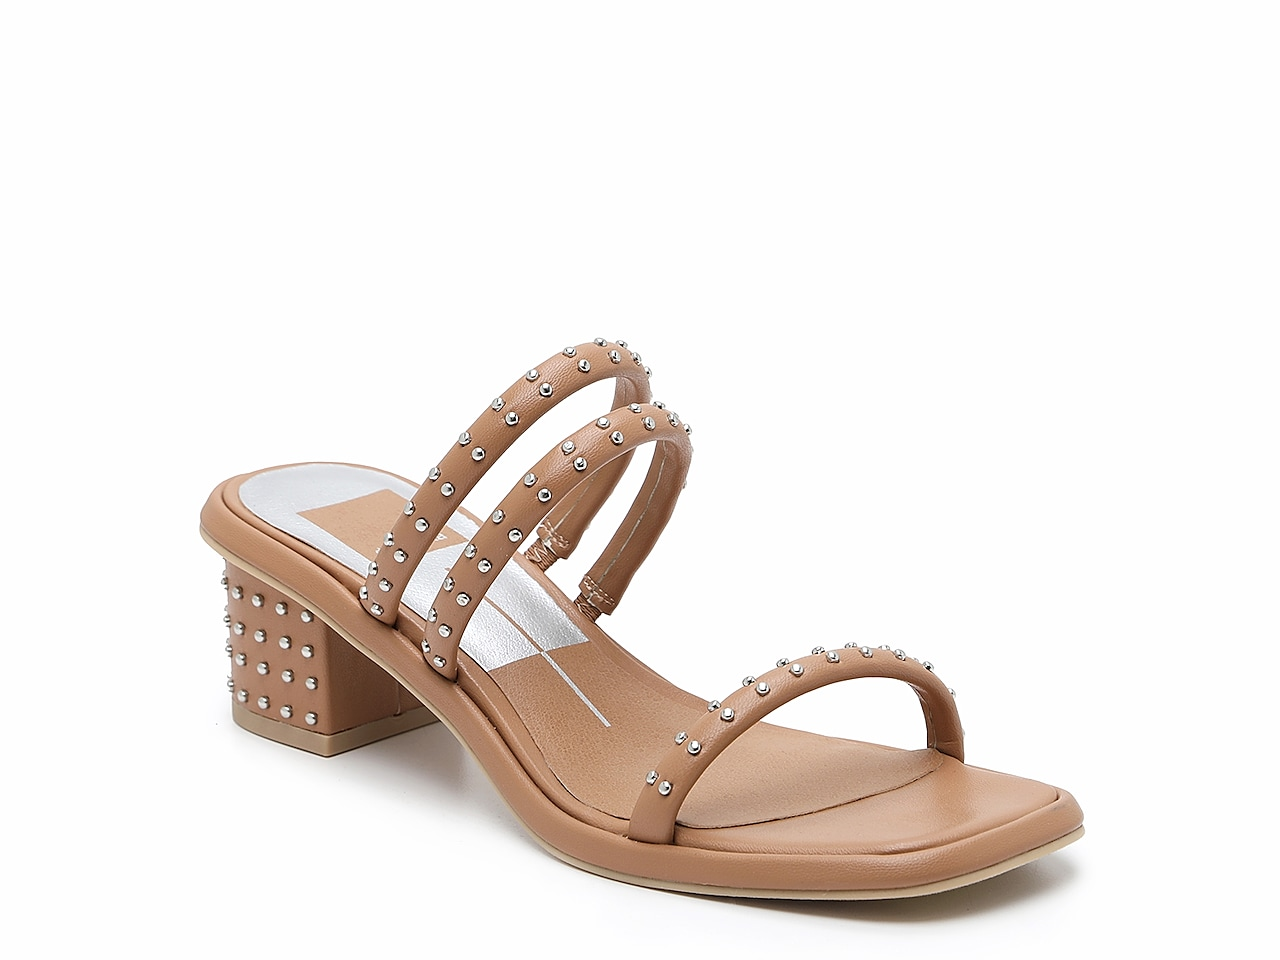 Sandals Sale! Up to 50% off at DSW!